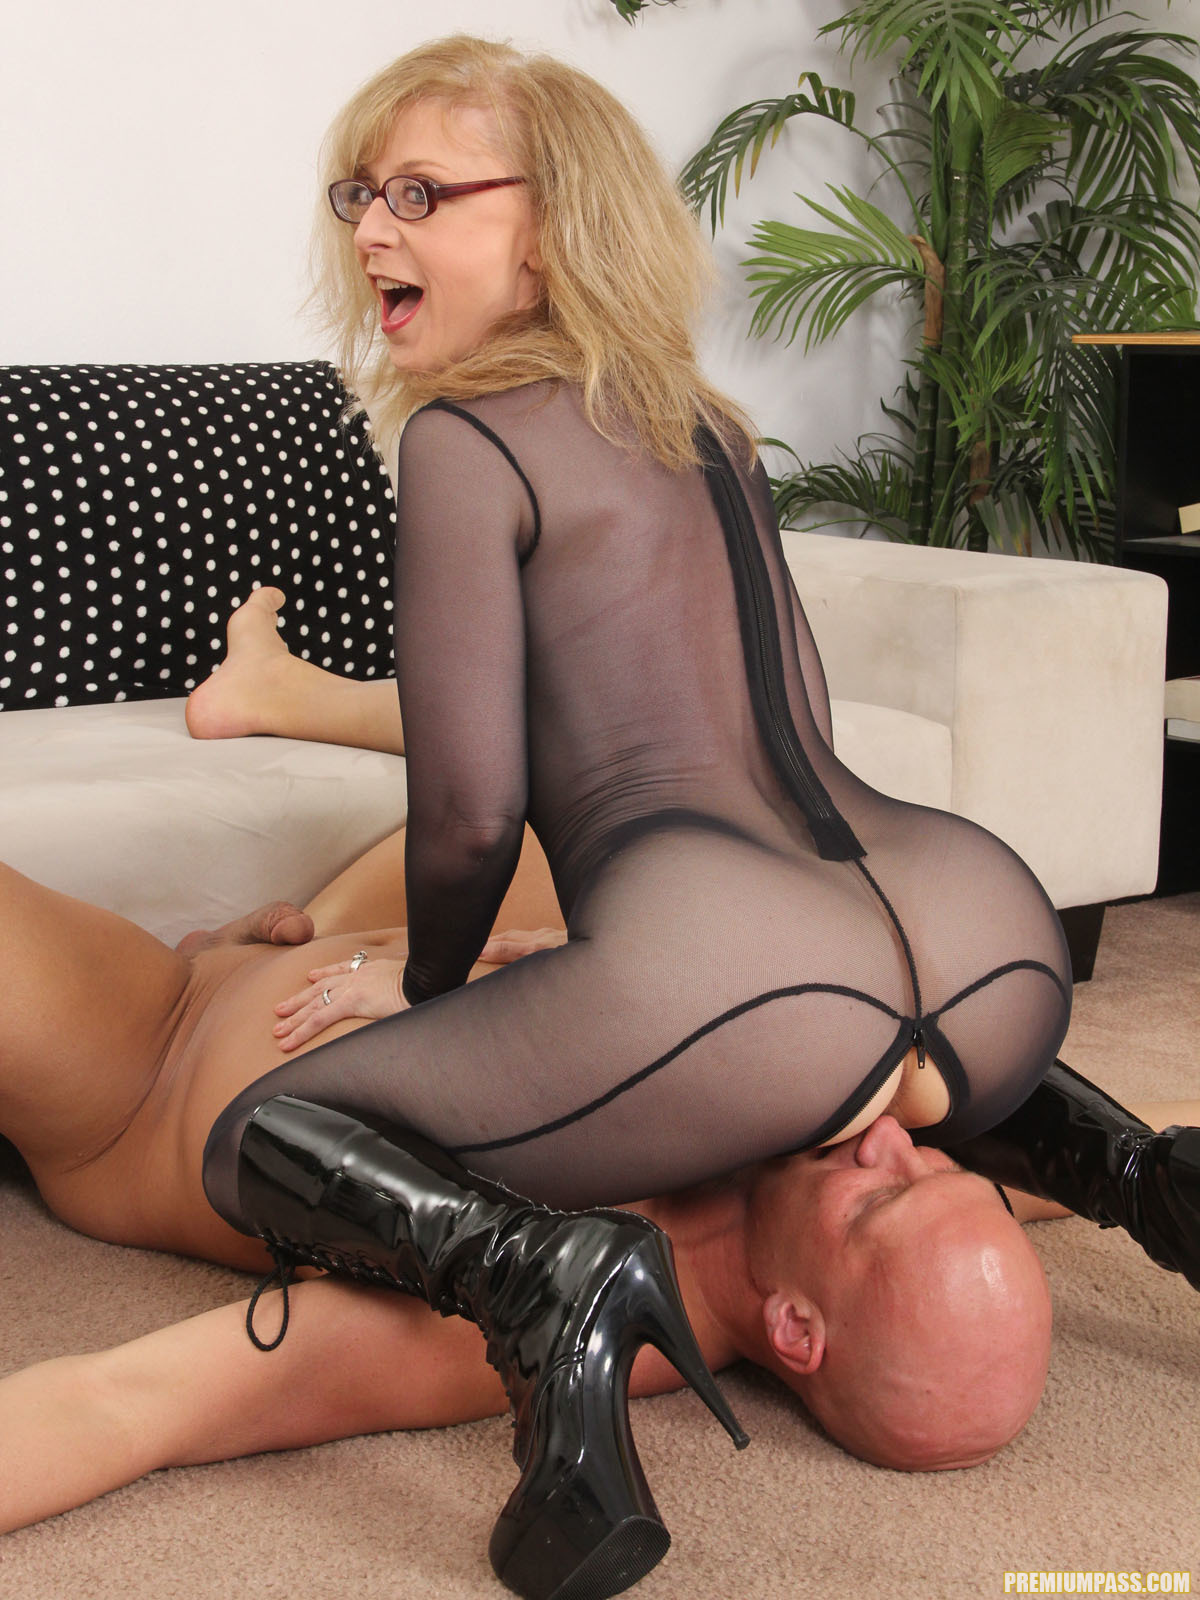 image Simone stephens her first ever blowjob way back